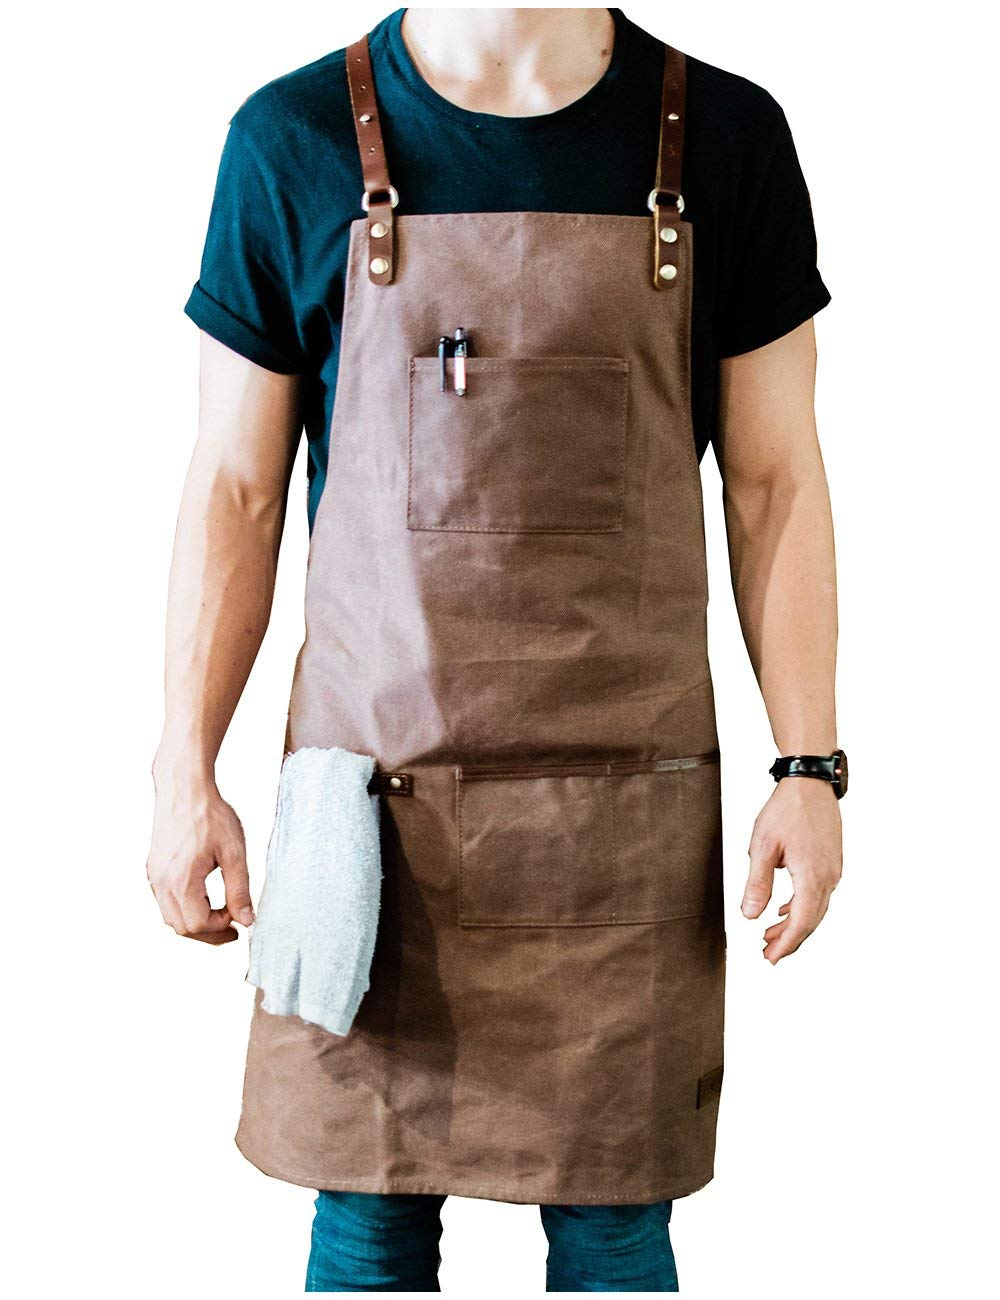 ApronMen   Leather and Canvas Adjustable Work Apron for Men  Buy ...